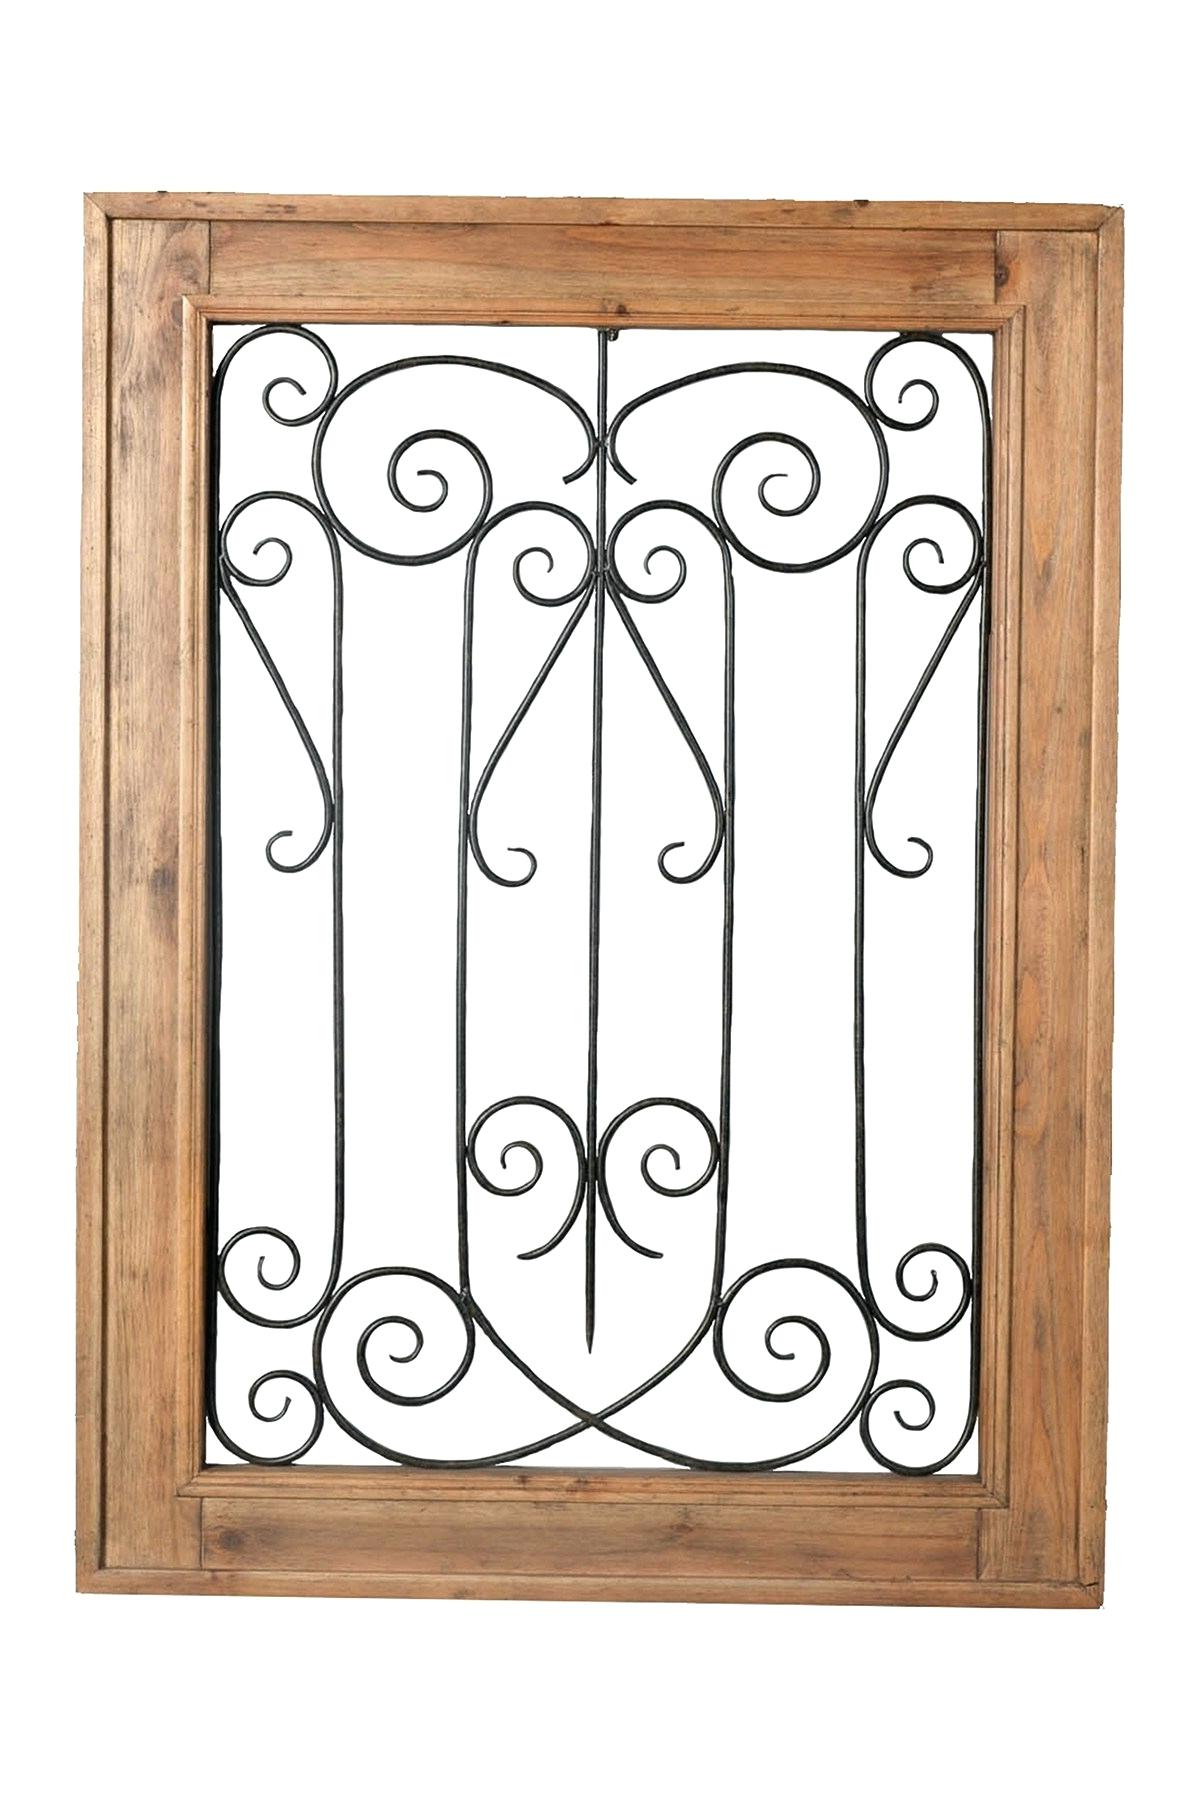 Newest Ornate Scroll Wall Decor Within Metal Scroll Wall Decor – Oknews (View 10 of 20)